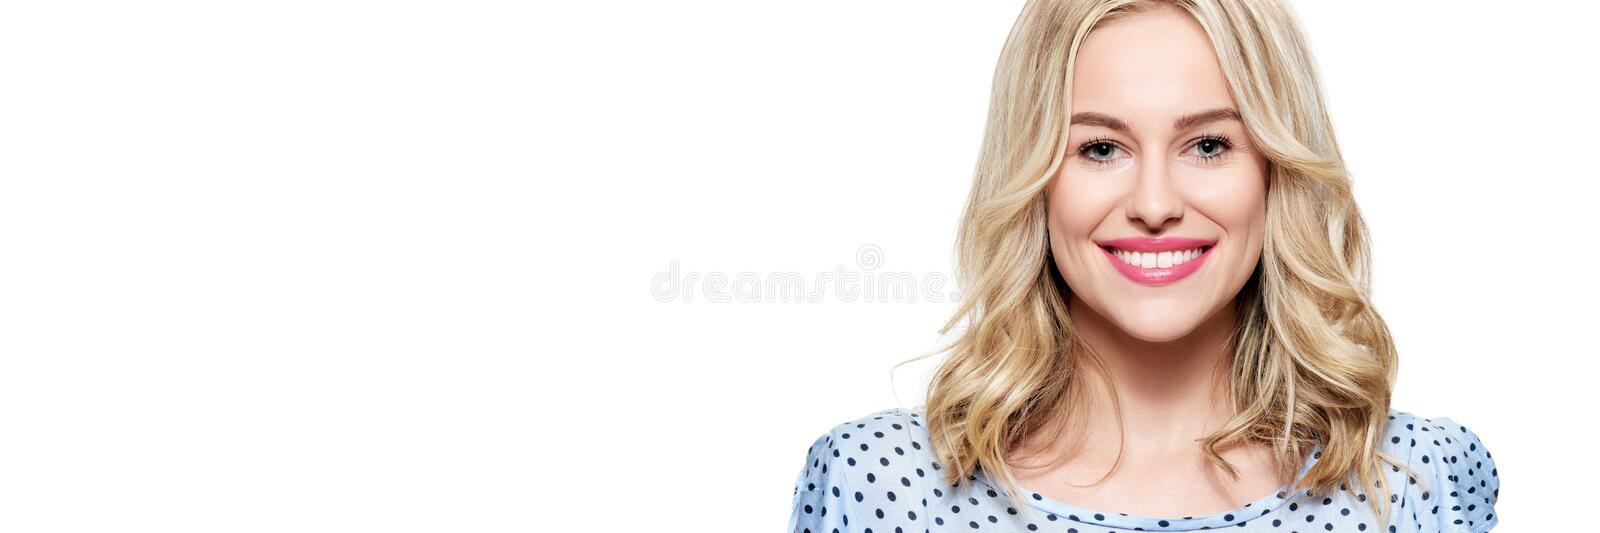 Beautiful young blond smiling woman with clean skin, natural make-up and perfect white teeth isolated over white background. royalty free stock photo